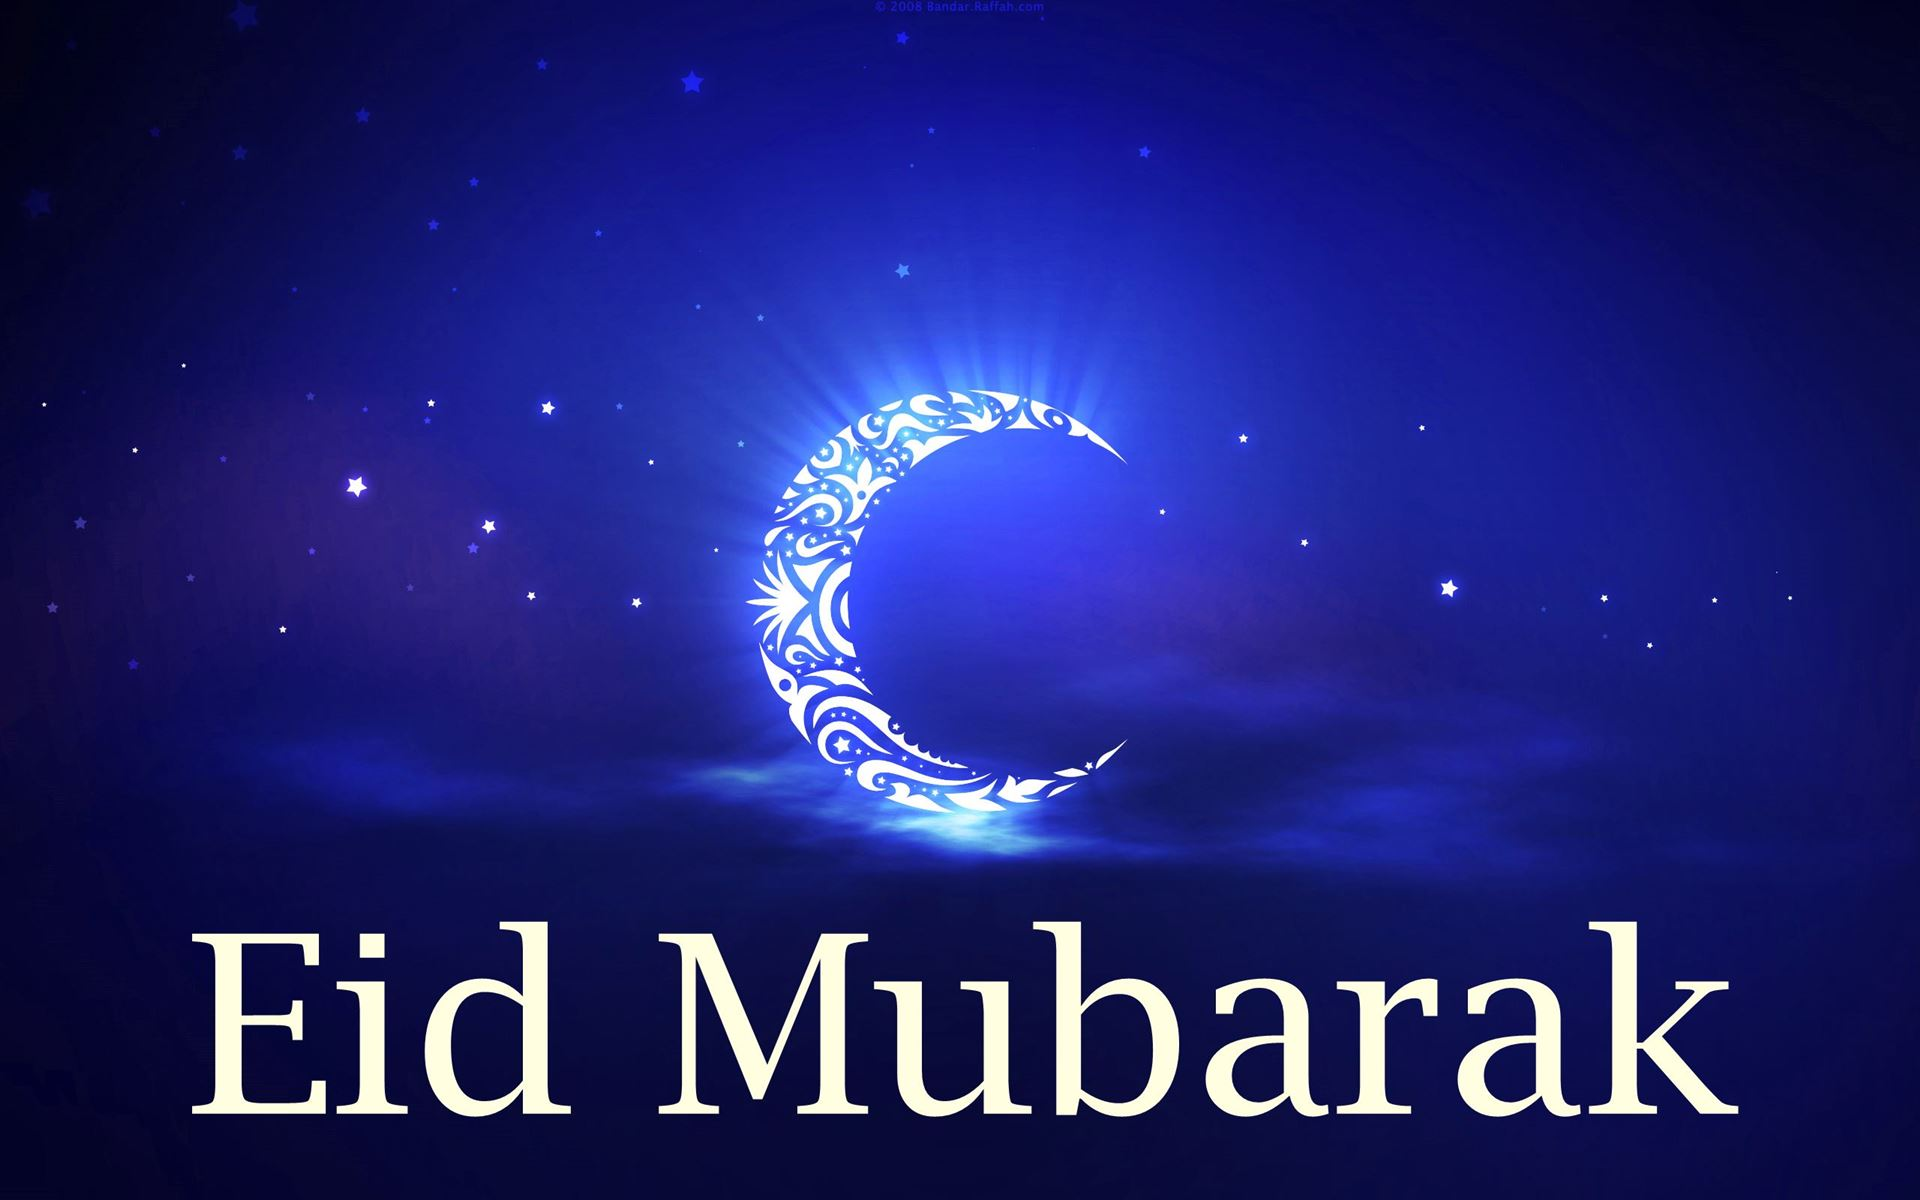 SF Wishes Eid Mubarak To Muslims Worldwide